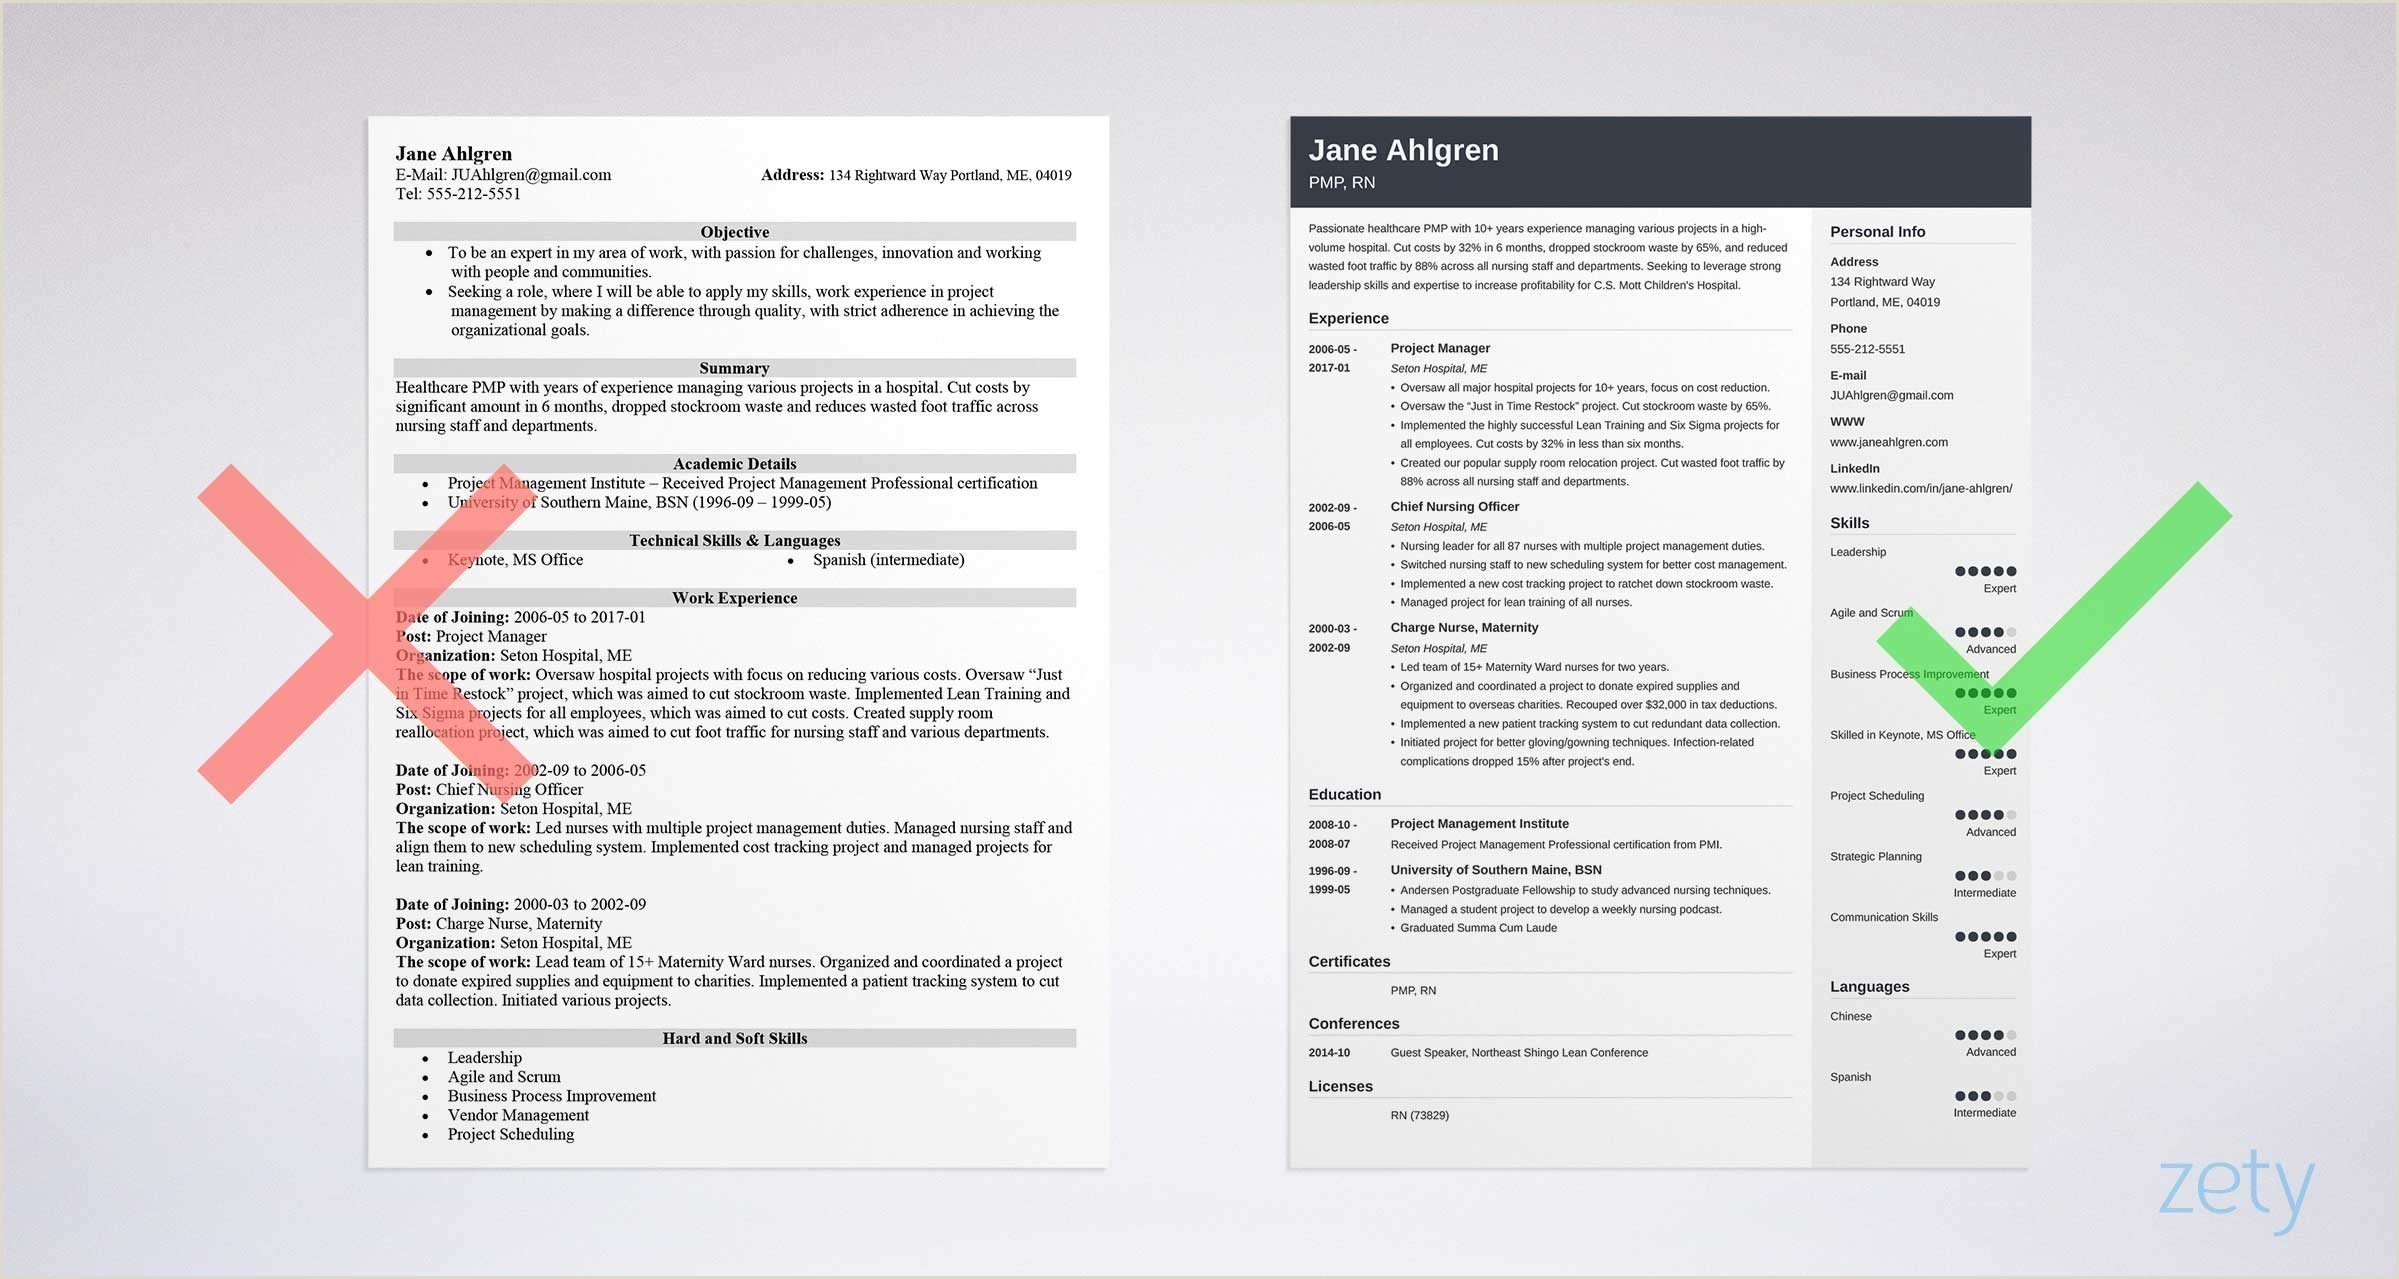 Latest Professional Cv format 2018 Cv Vs Resume Difference Definitions & when to Use which